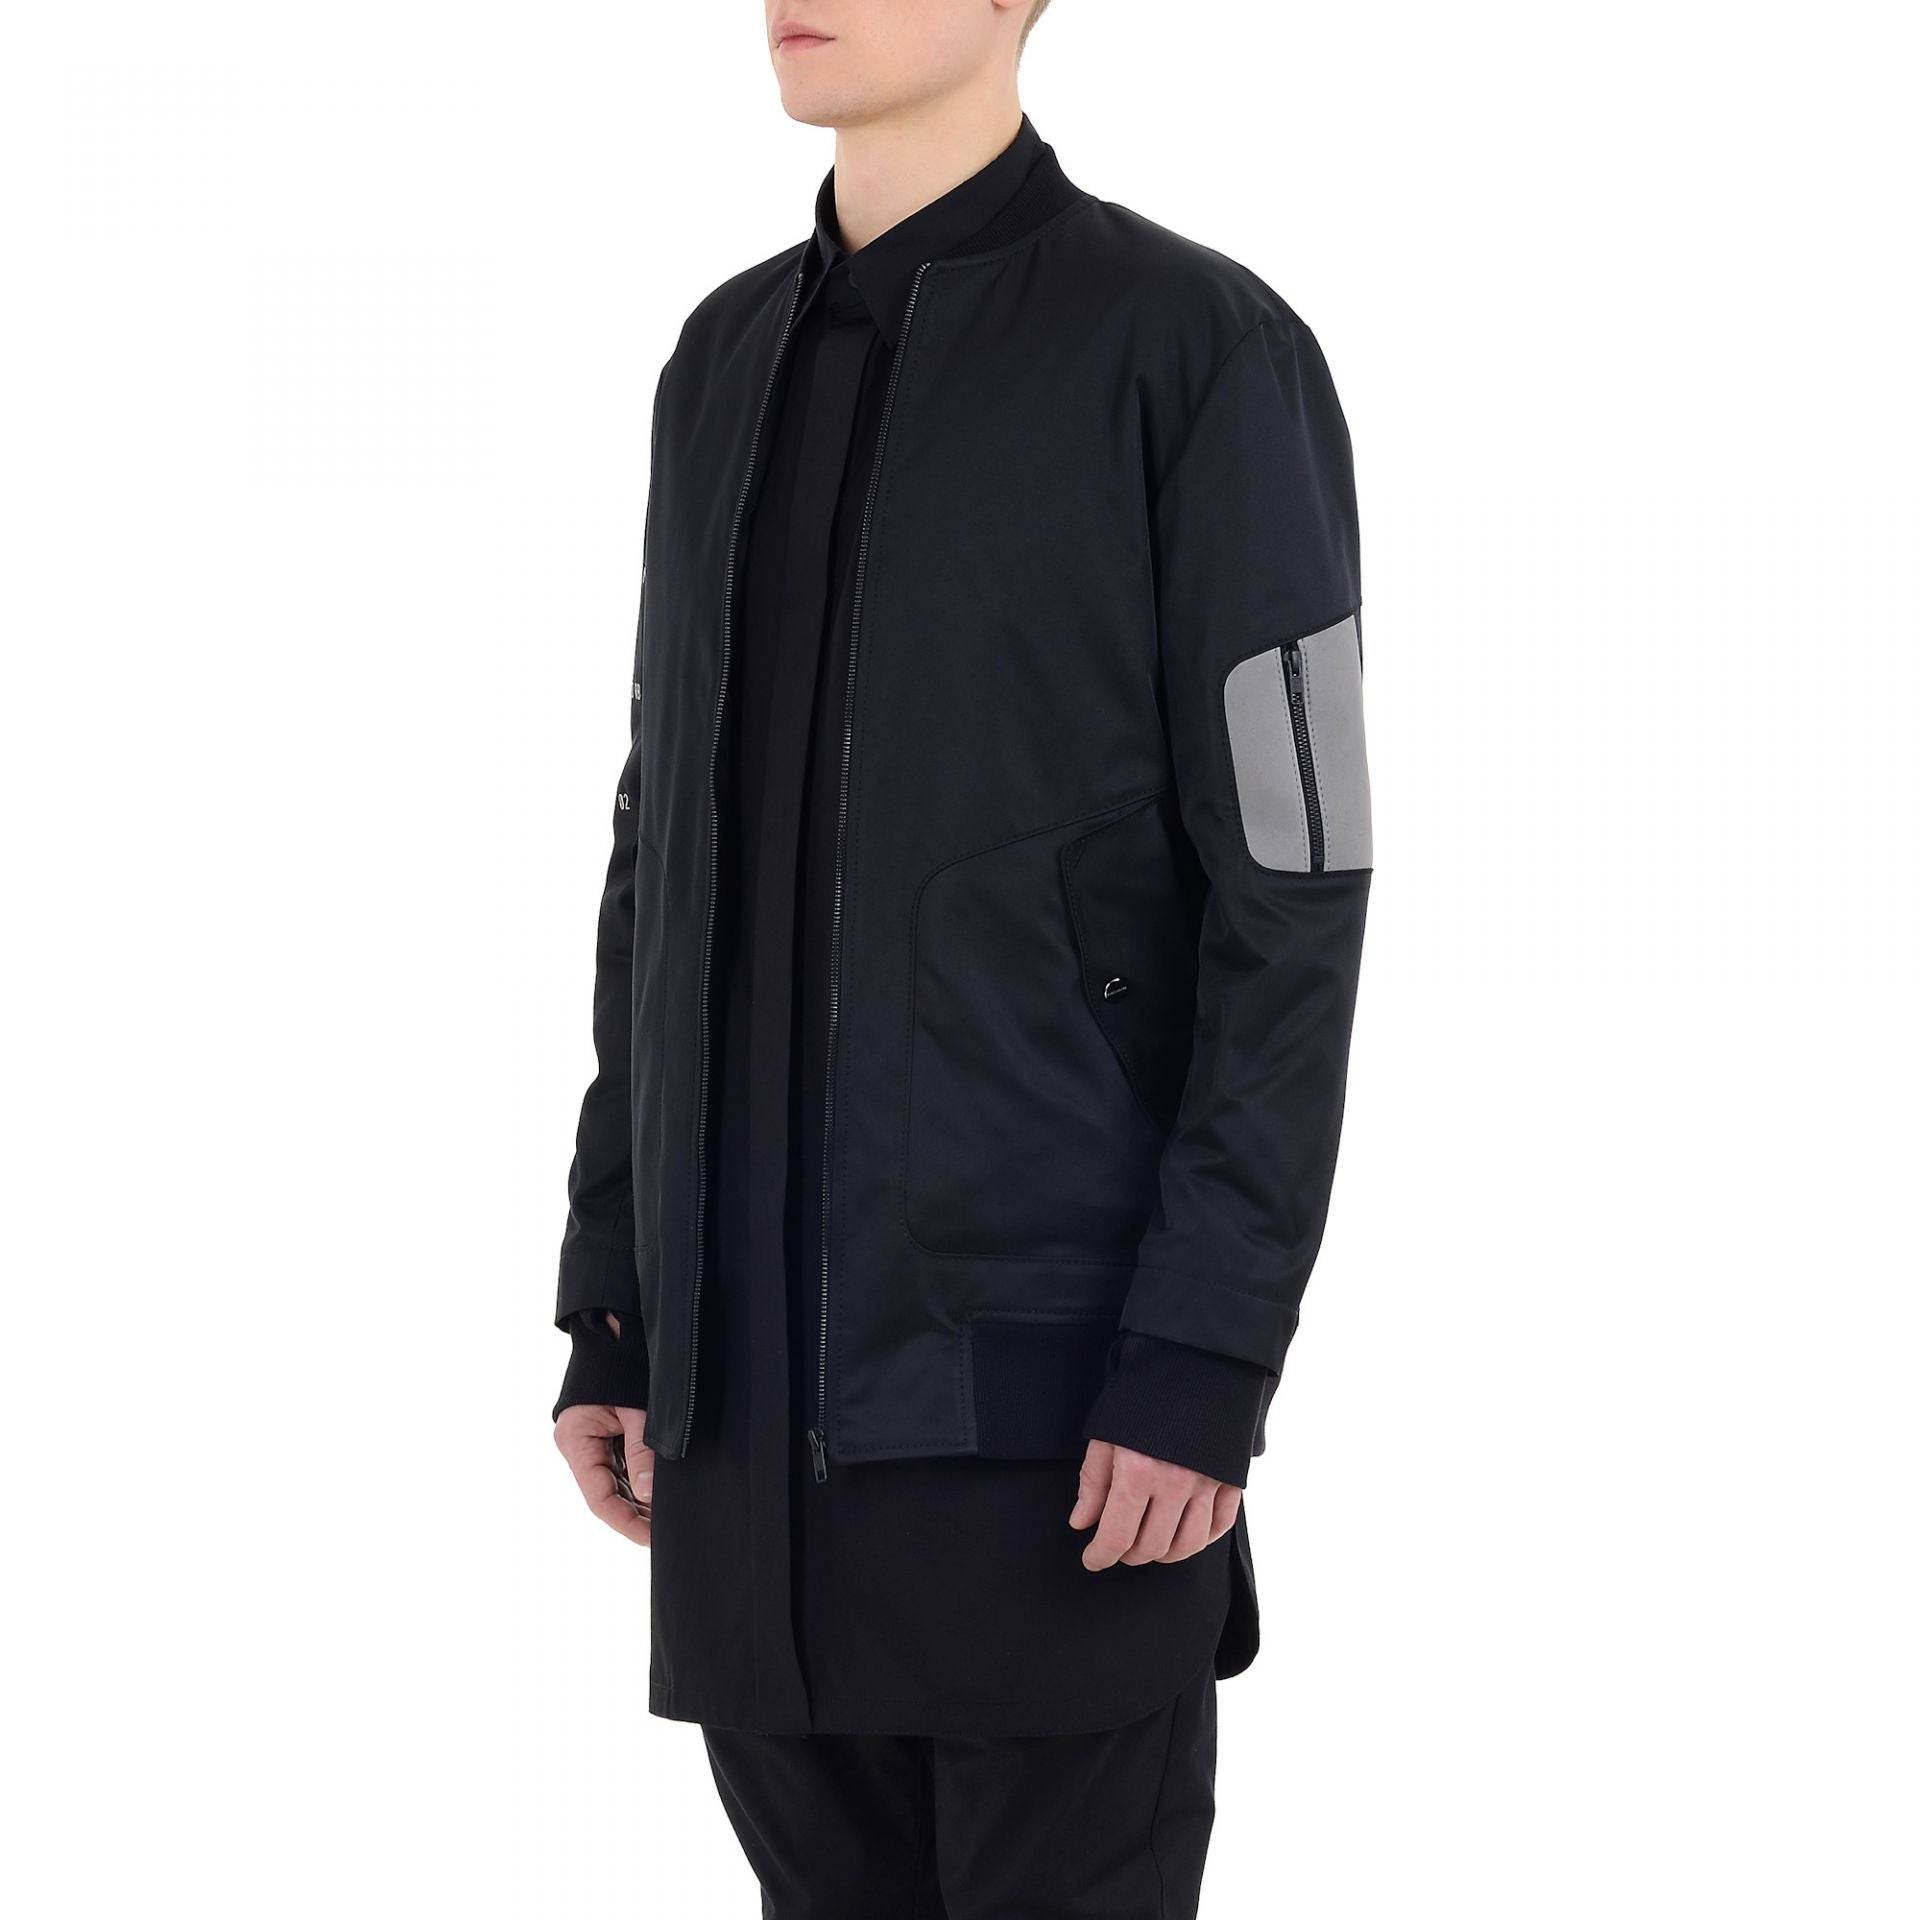 RUNNER BOMBER BLACK